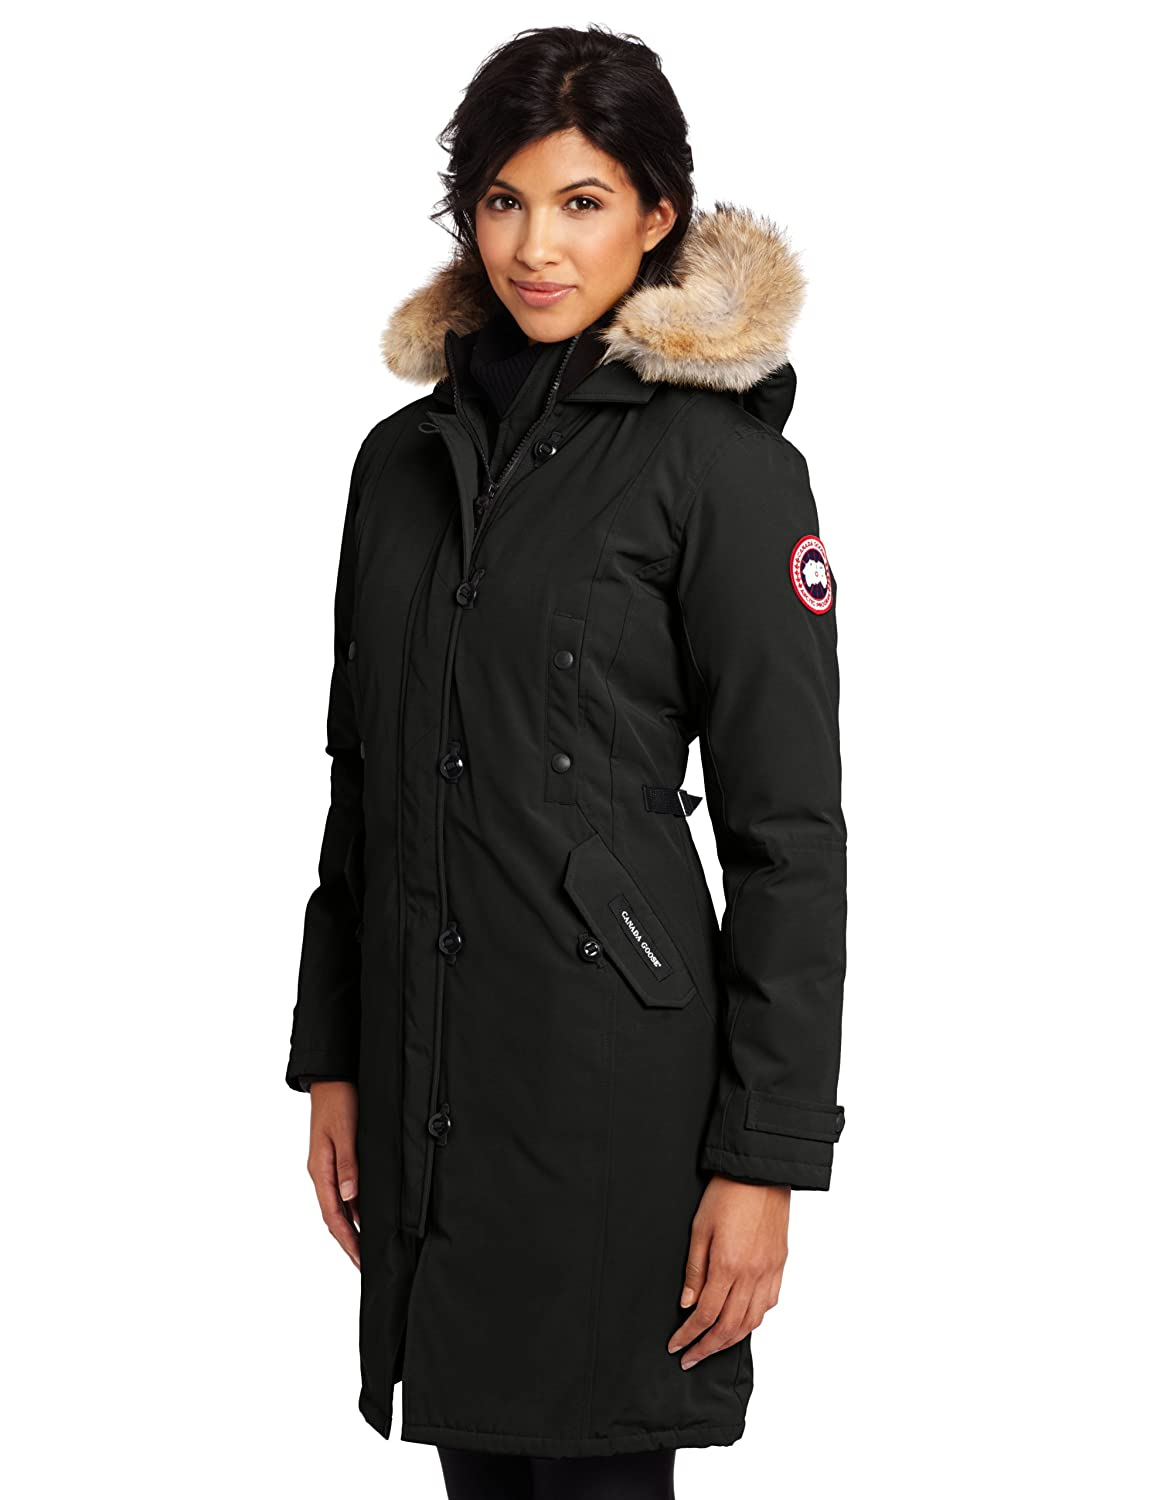 Cheap coats women